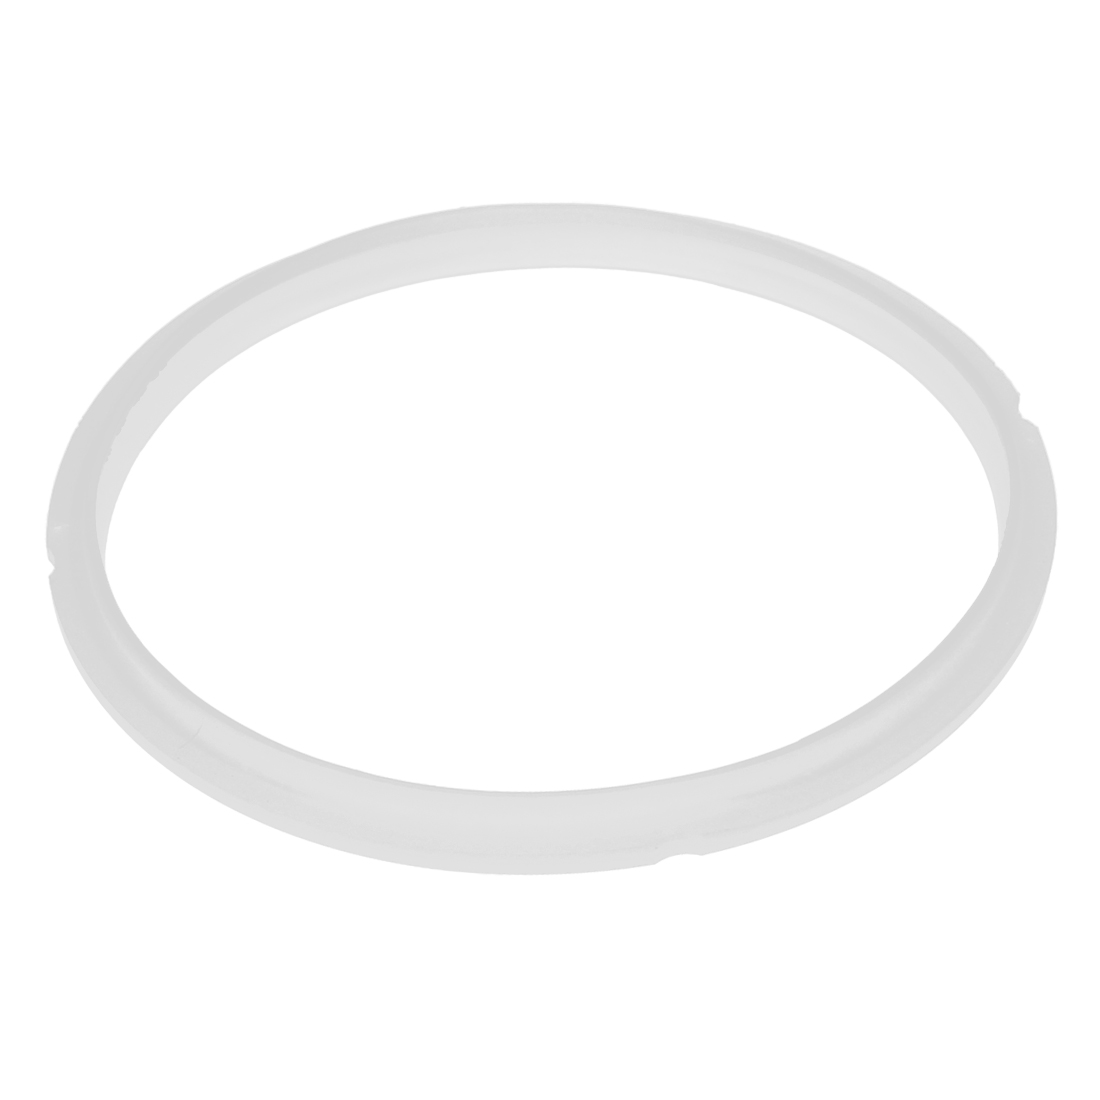 Pressure Cooker Silicone Gasket Sealing Ring 20cm Internal Diameter